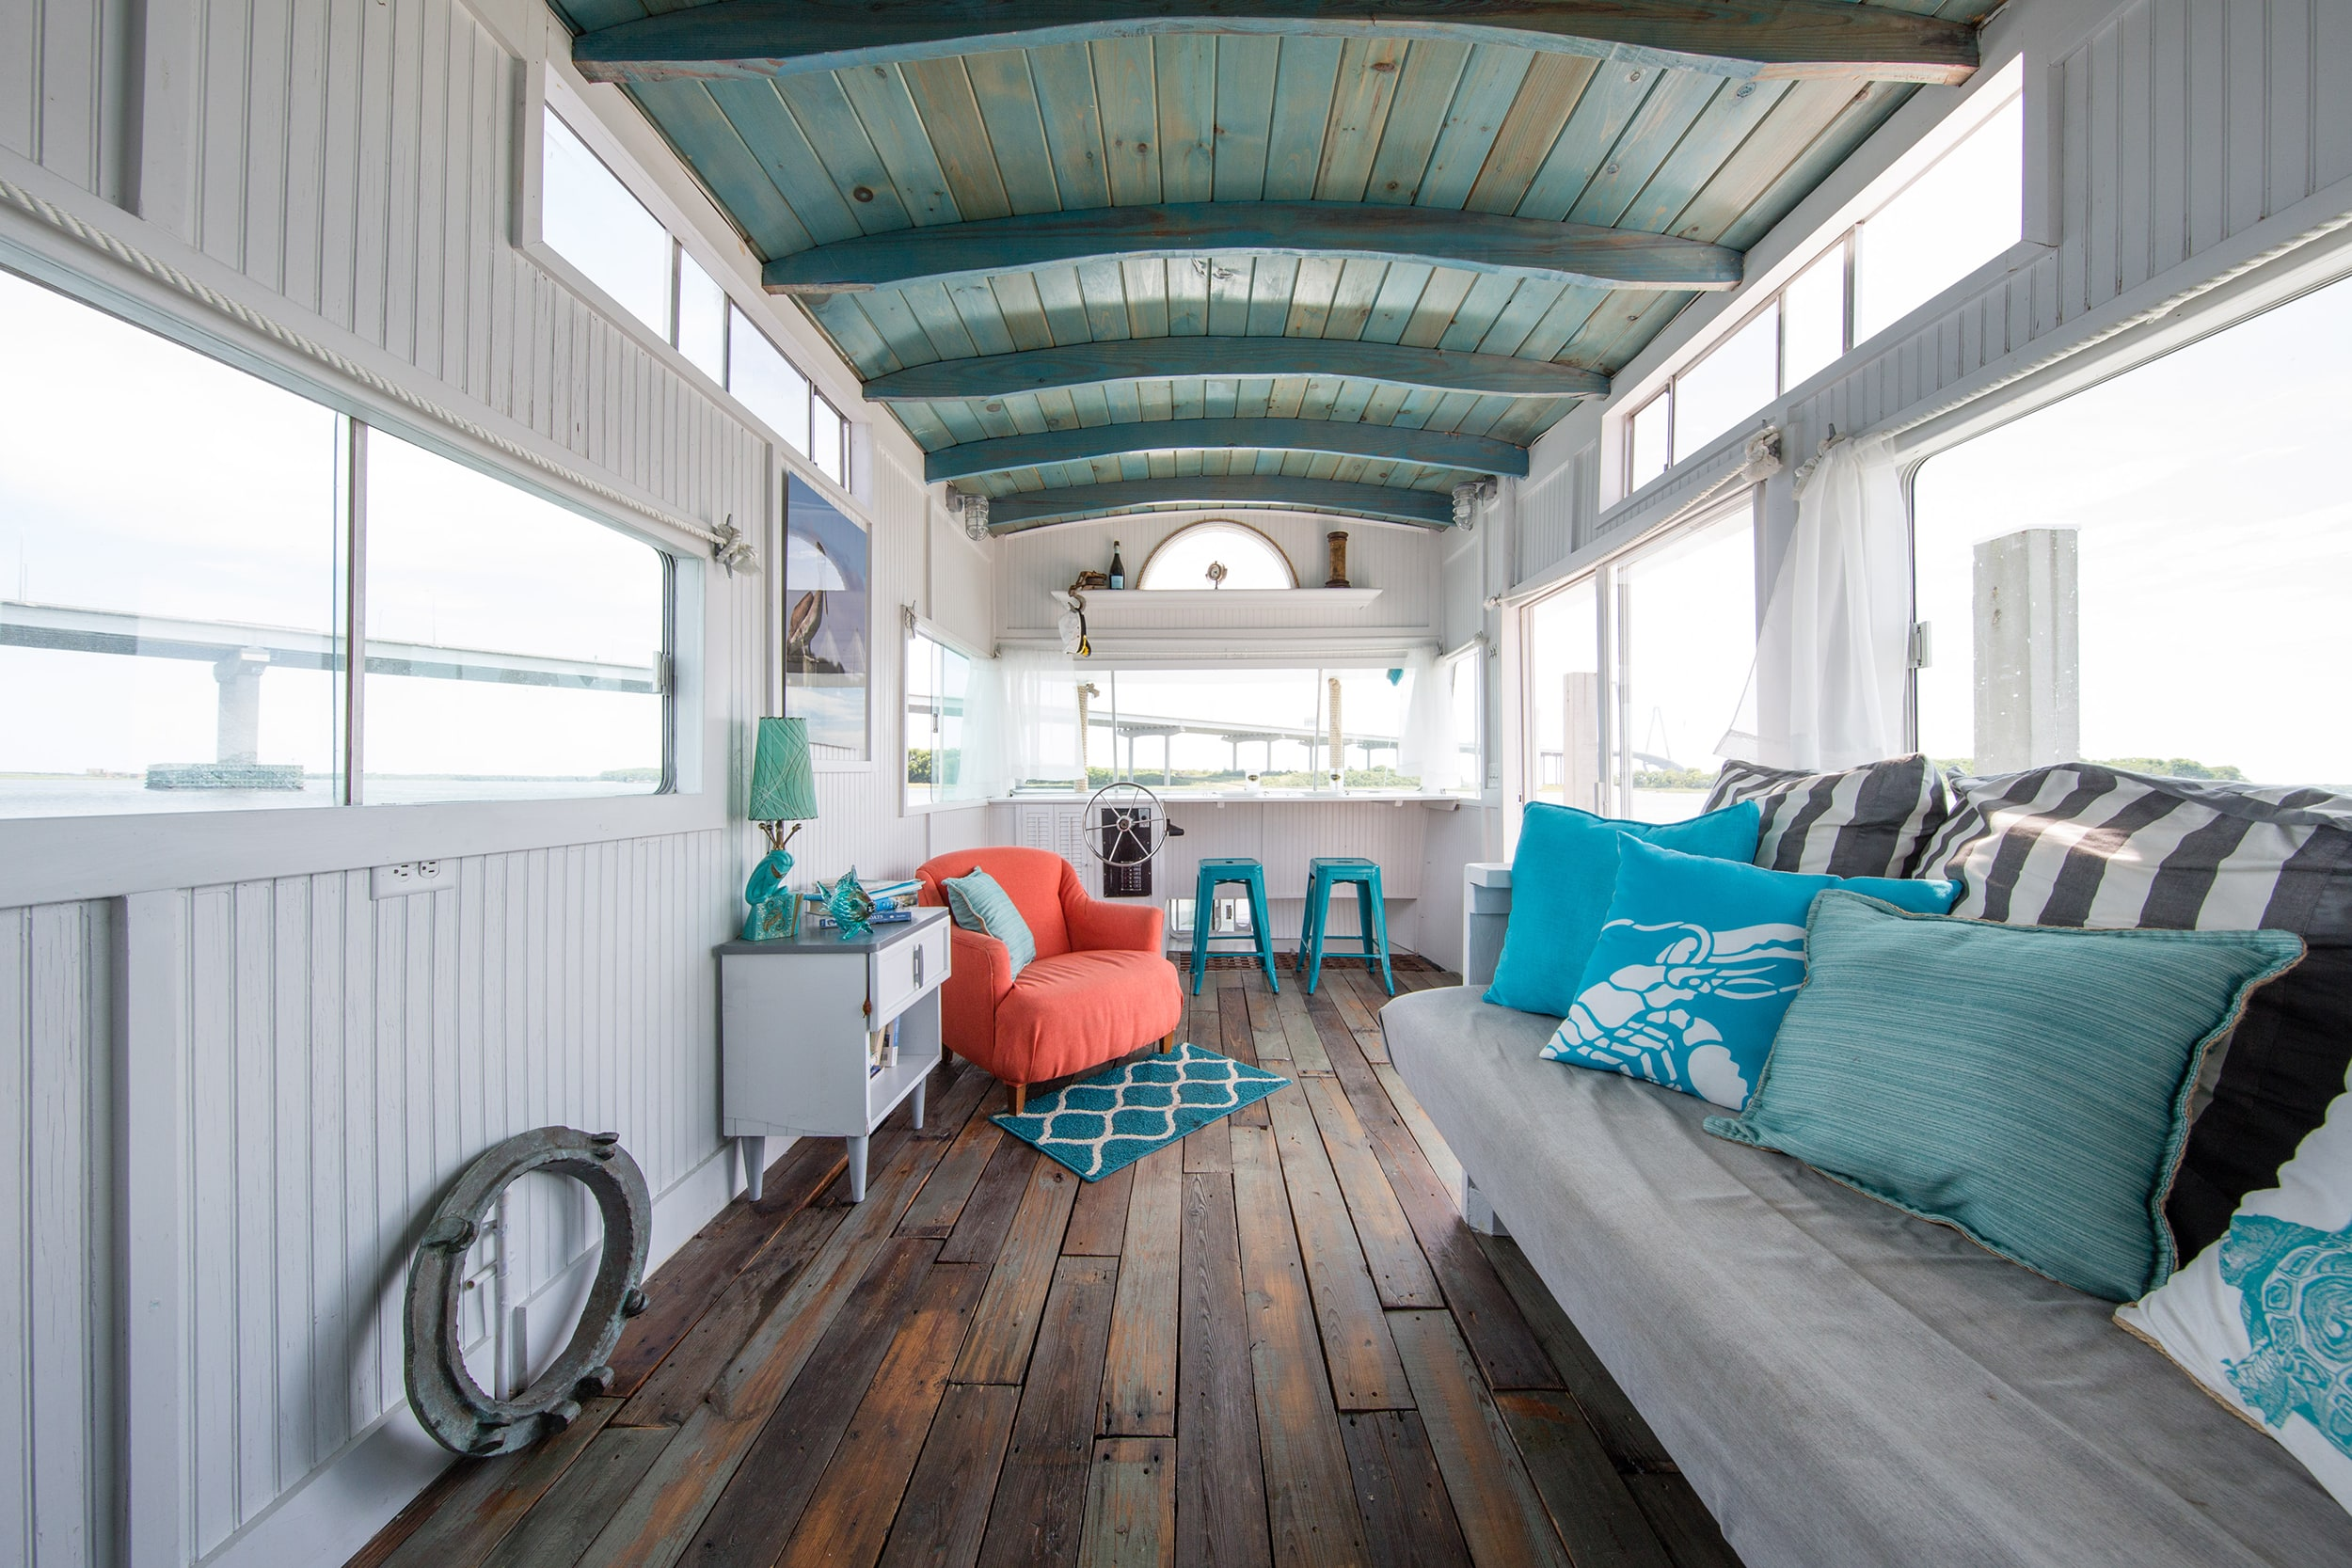 A Pirate's Life For Me – Houseboat!, Charleston, SC